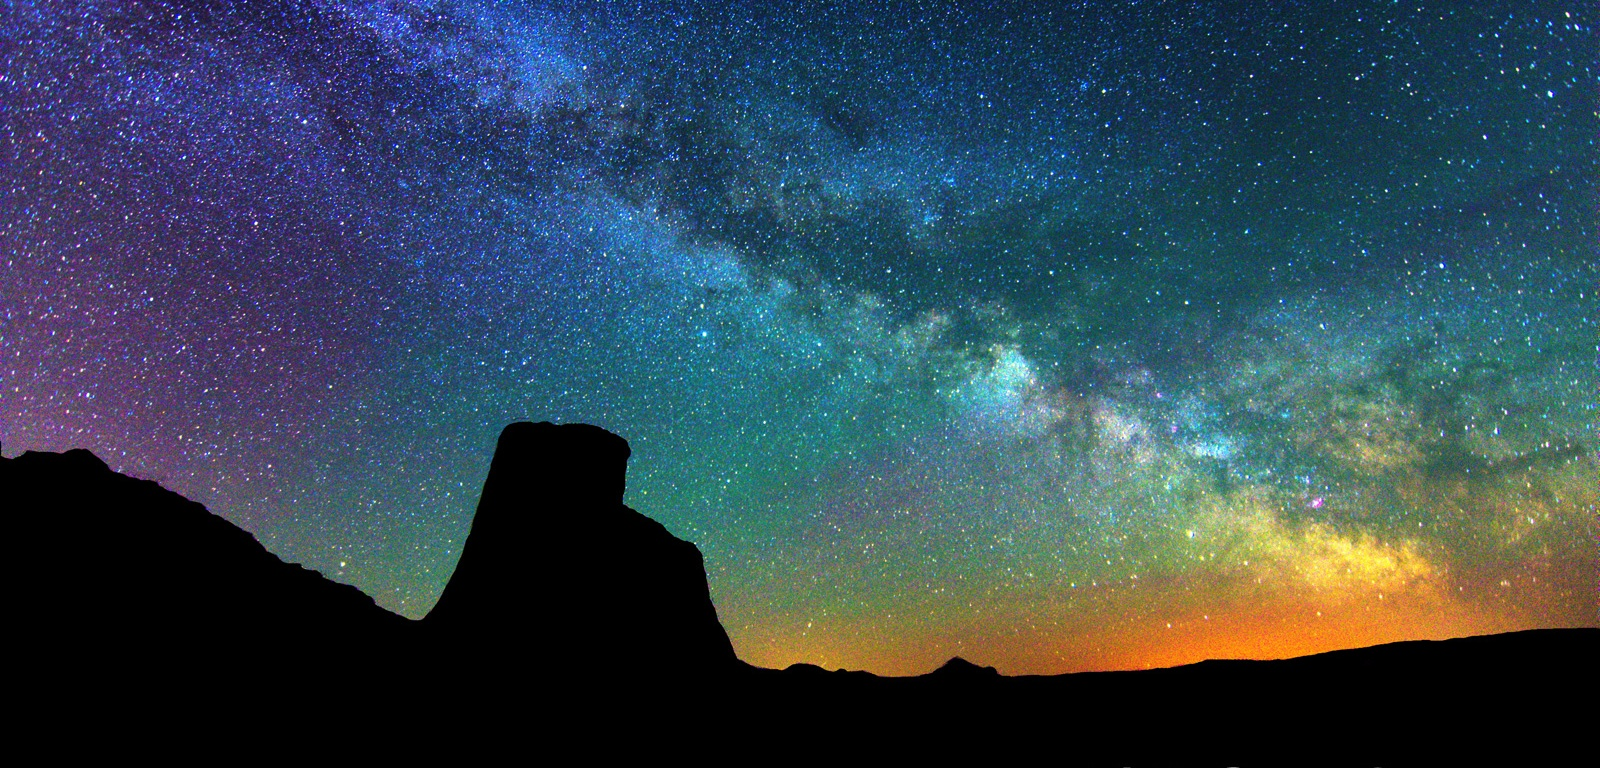 Avonlea Badlands - Hoodoo Silhouette and Milky Way